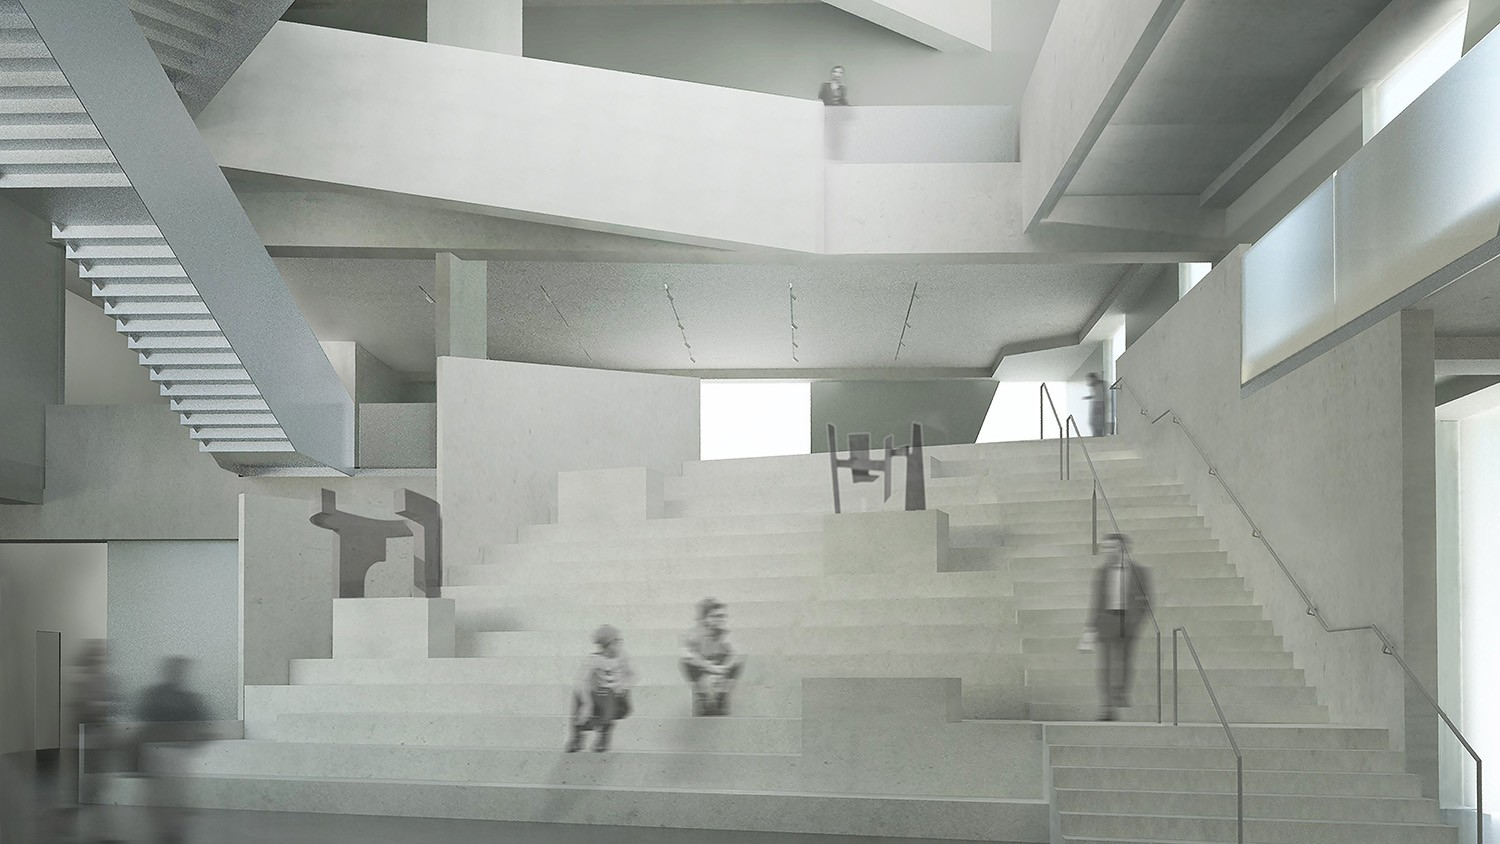 https://s3.us-east-2.amazonaws.com/steven-holl/uploads/projects/project-images/StevenHollArchitects_Glassell_forummain_WH.jpg